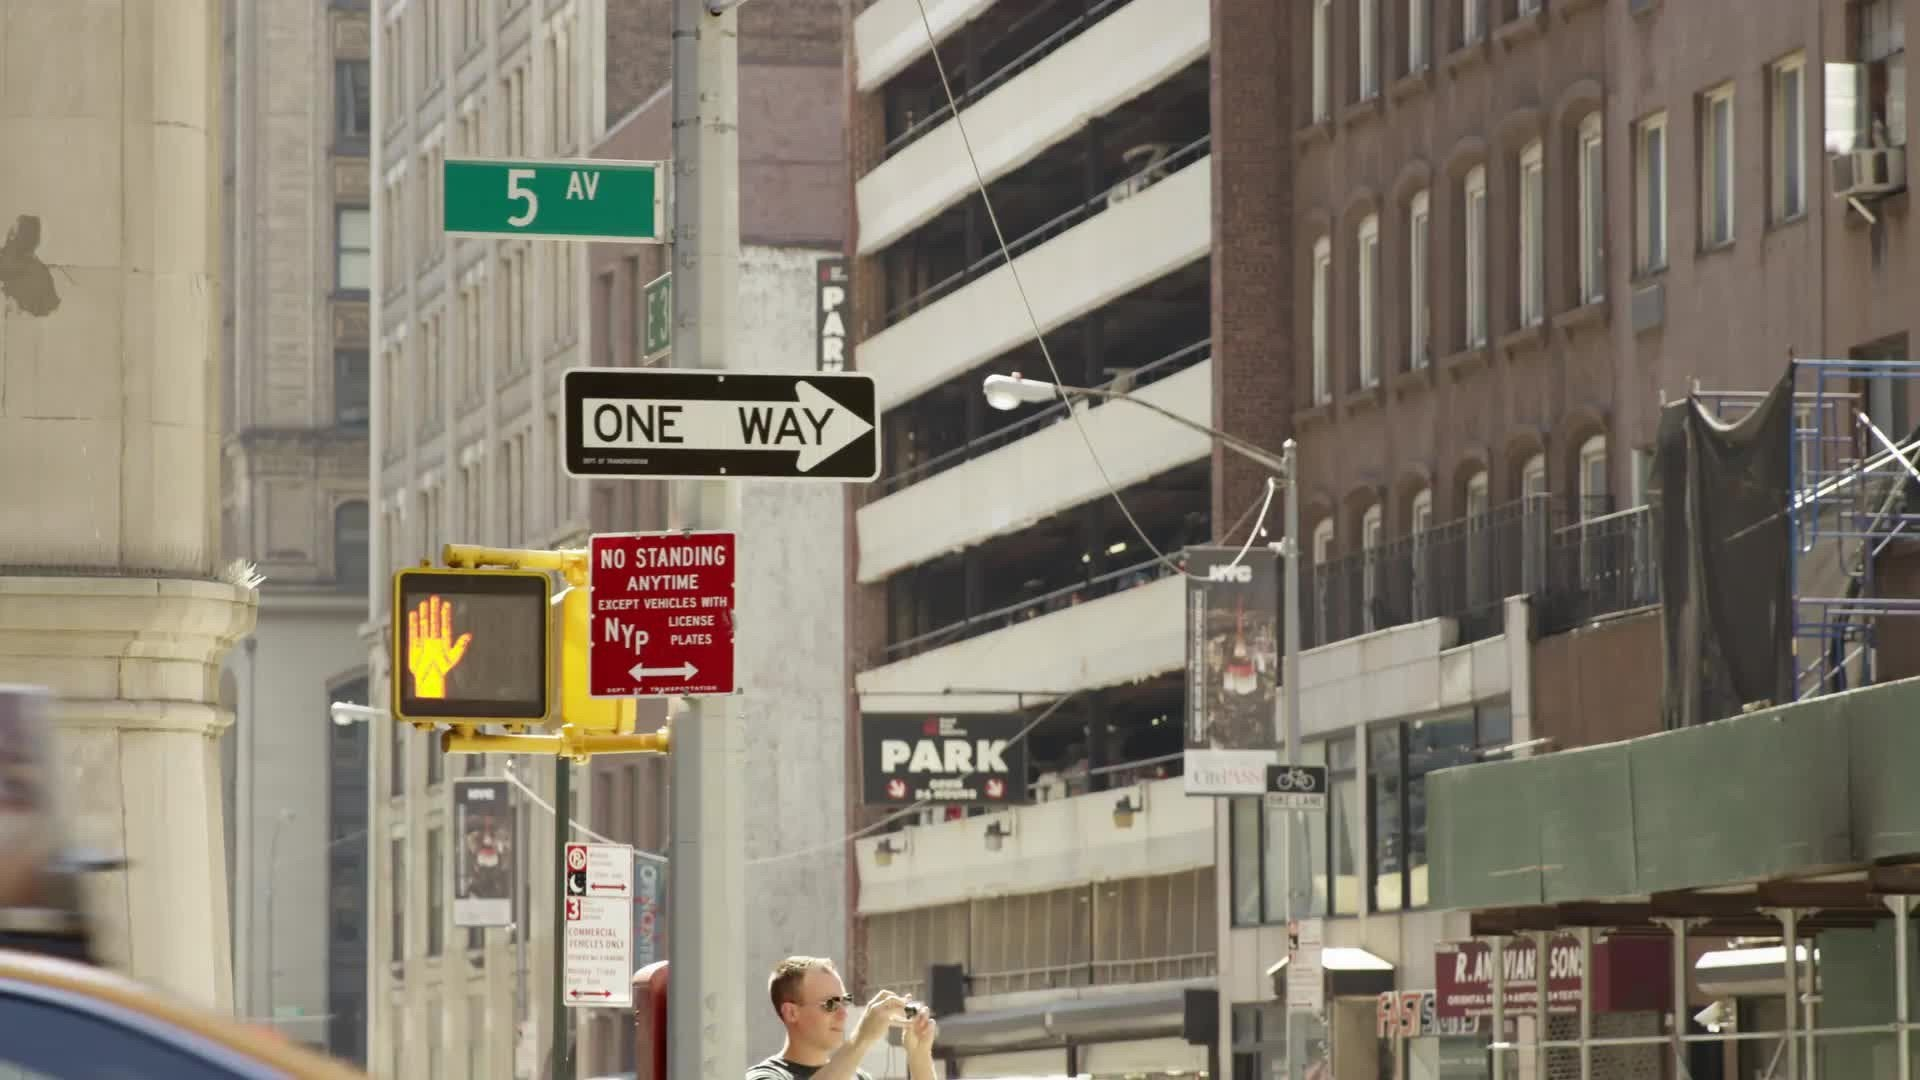 5th Avenue sign with one way arrow - taxi cab driving down Fifth Ave on summer day in Manhattan NYC